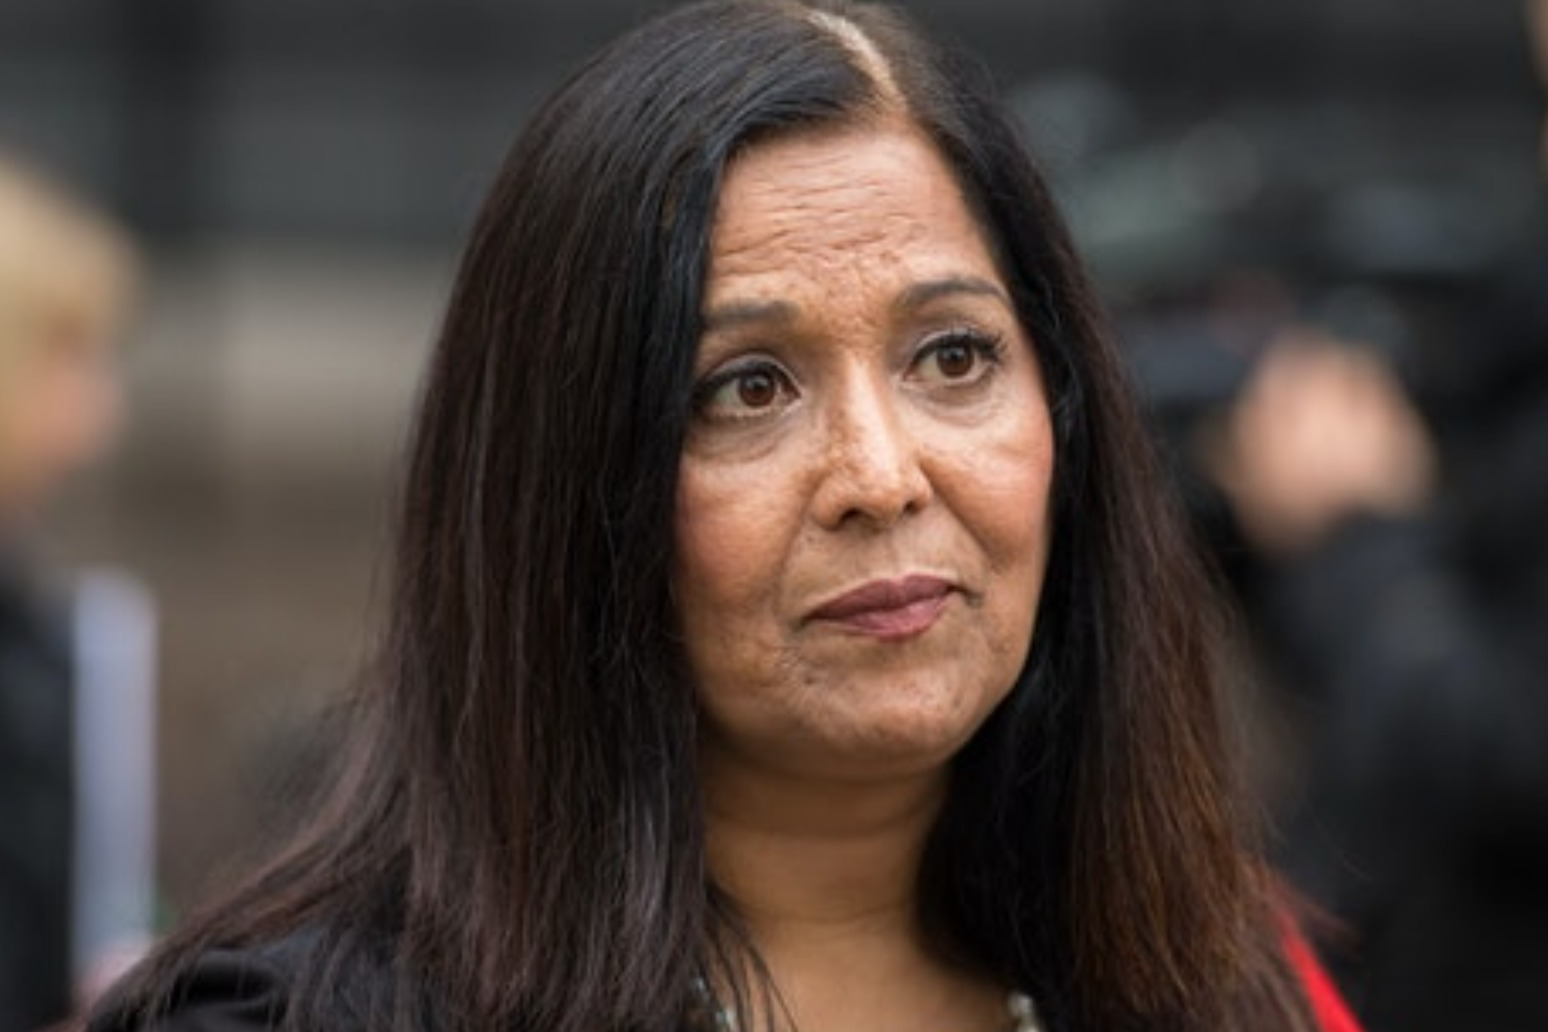 Labour MP Yasmin Qureshi in hospital with Covid-19